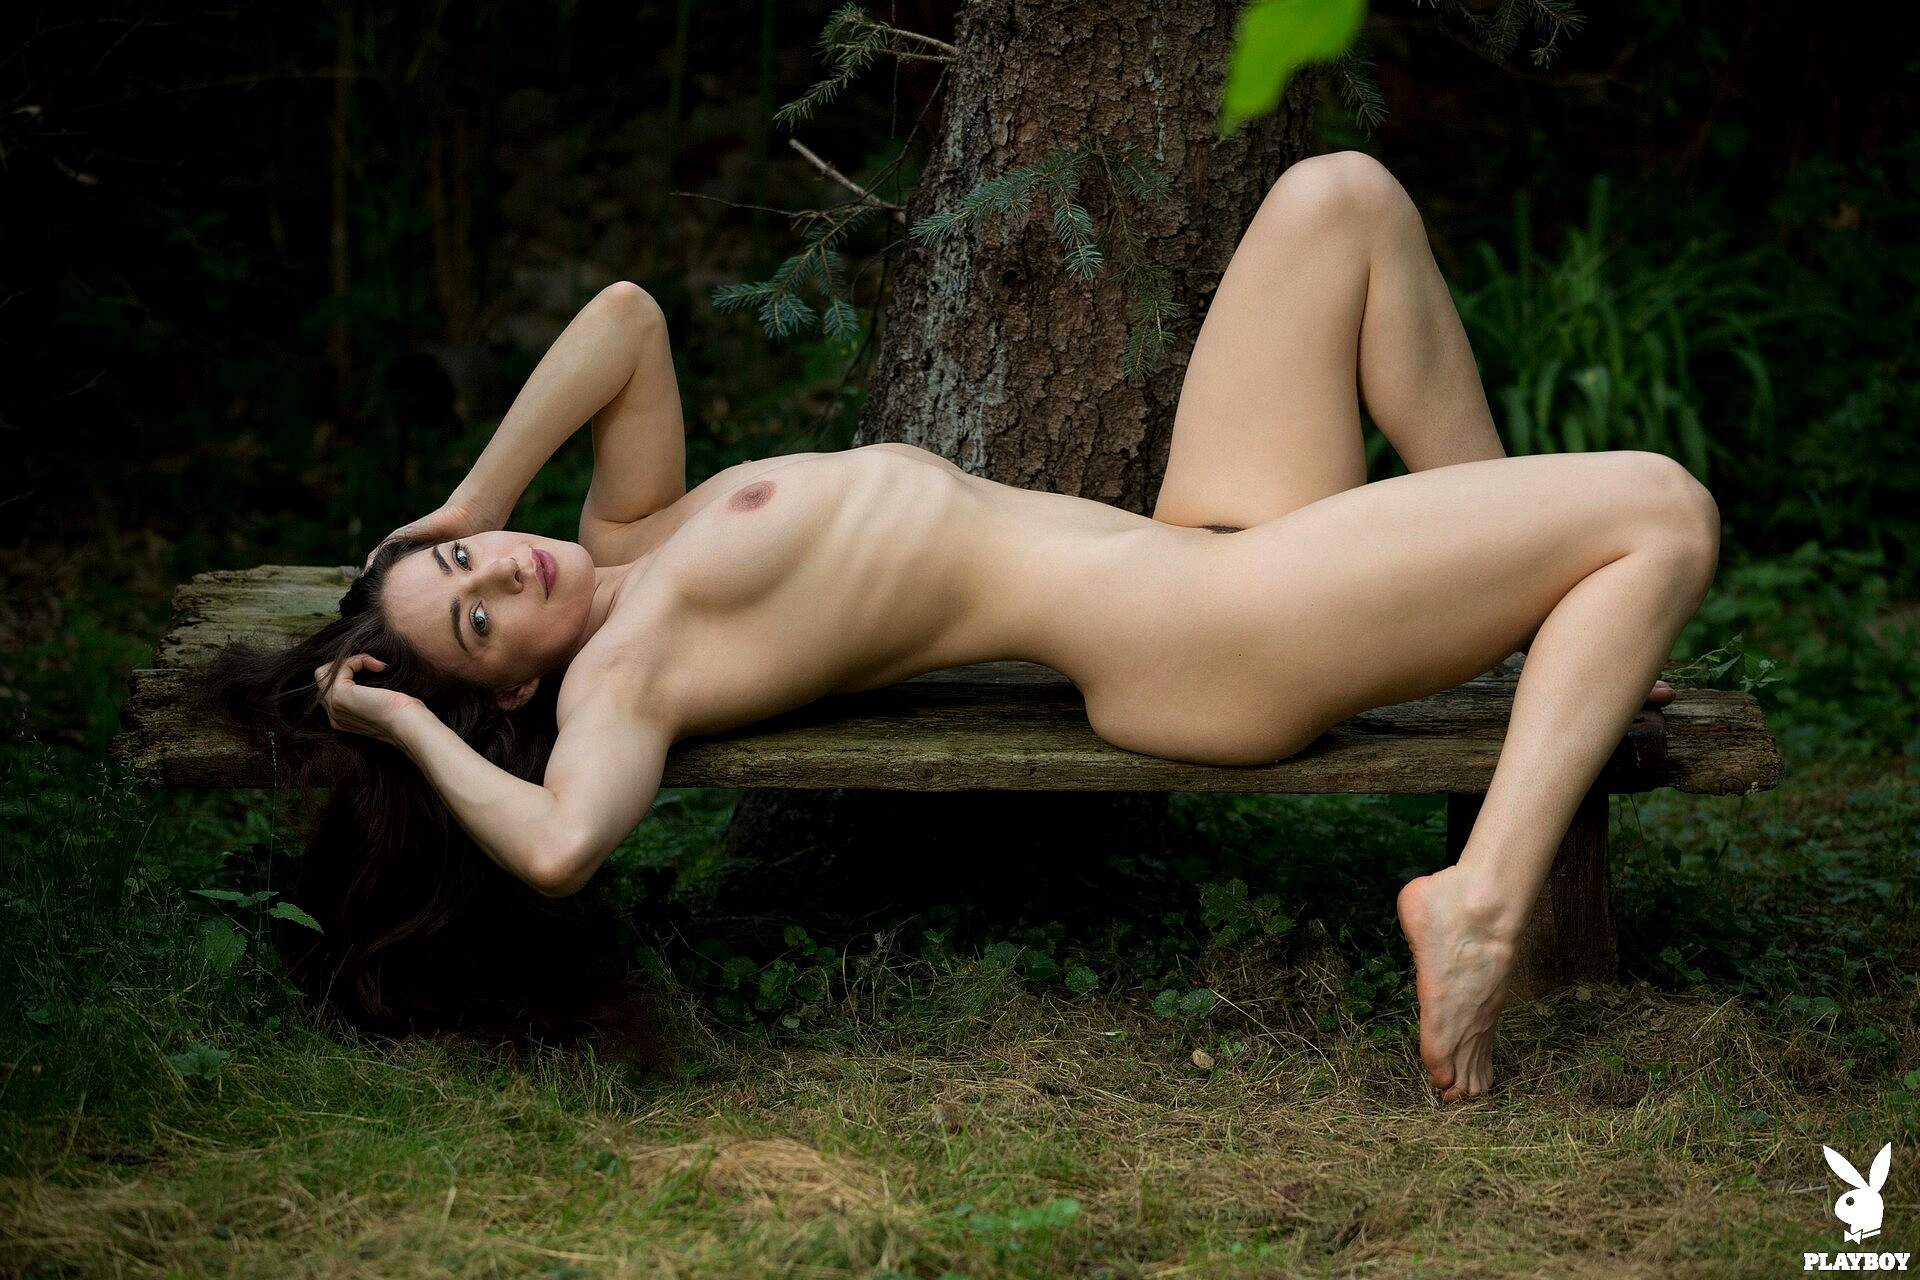 Playboy Plus Joy Draiki Aztekmusexxx Naked Outdoors Girl Nude Sex Hd Pics-9773